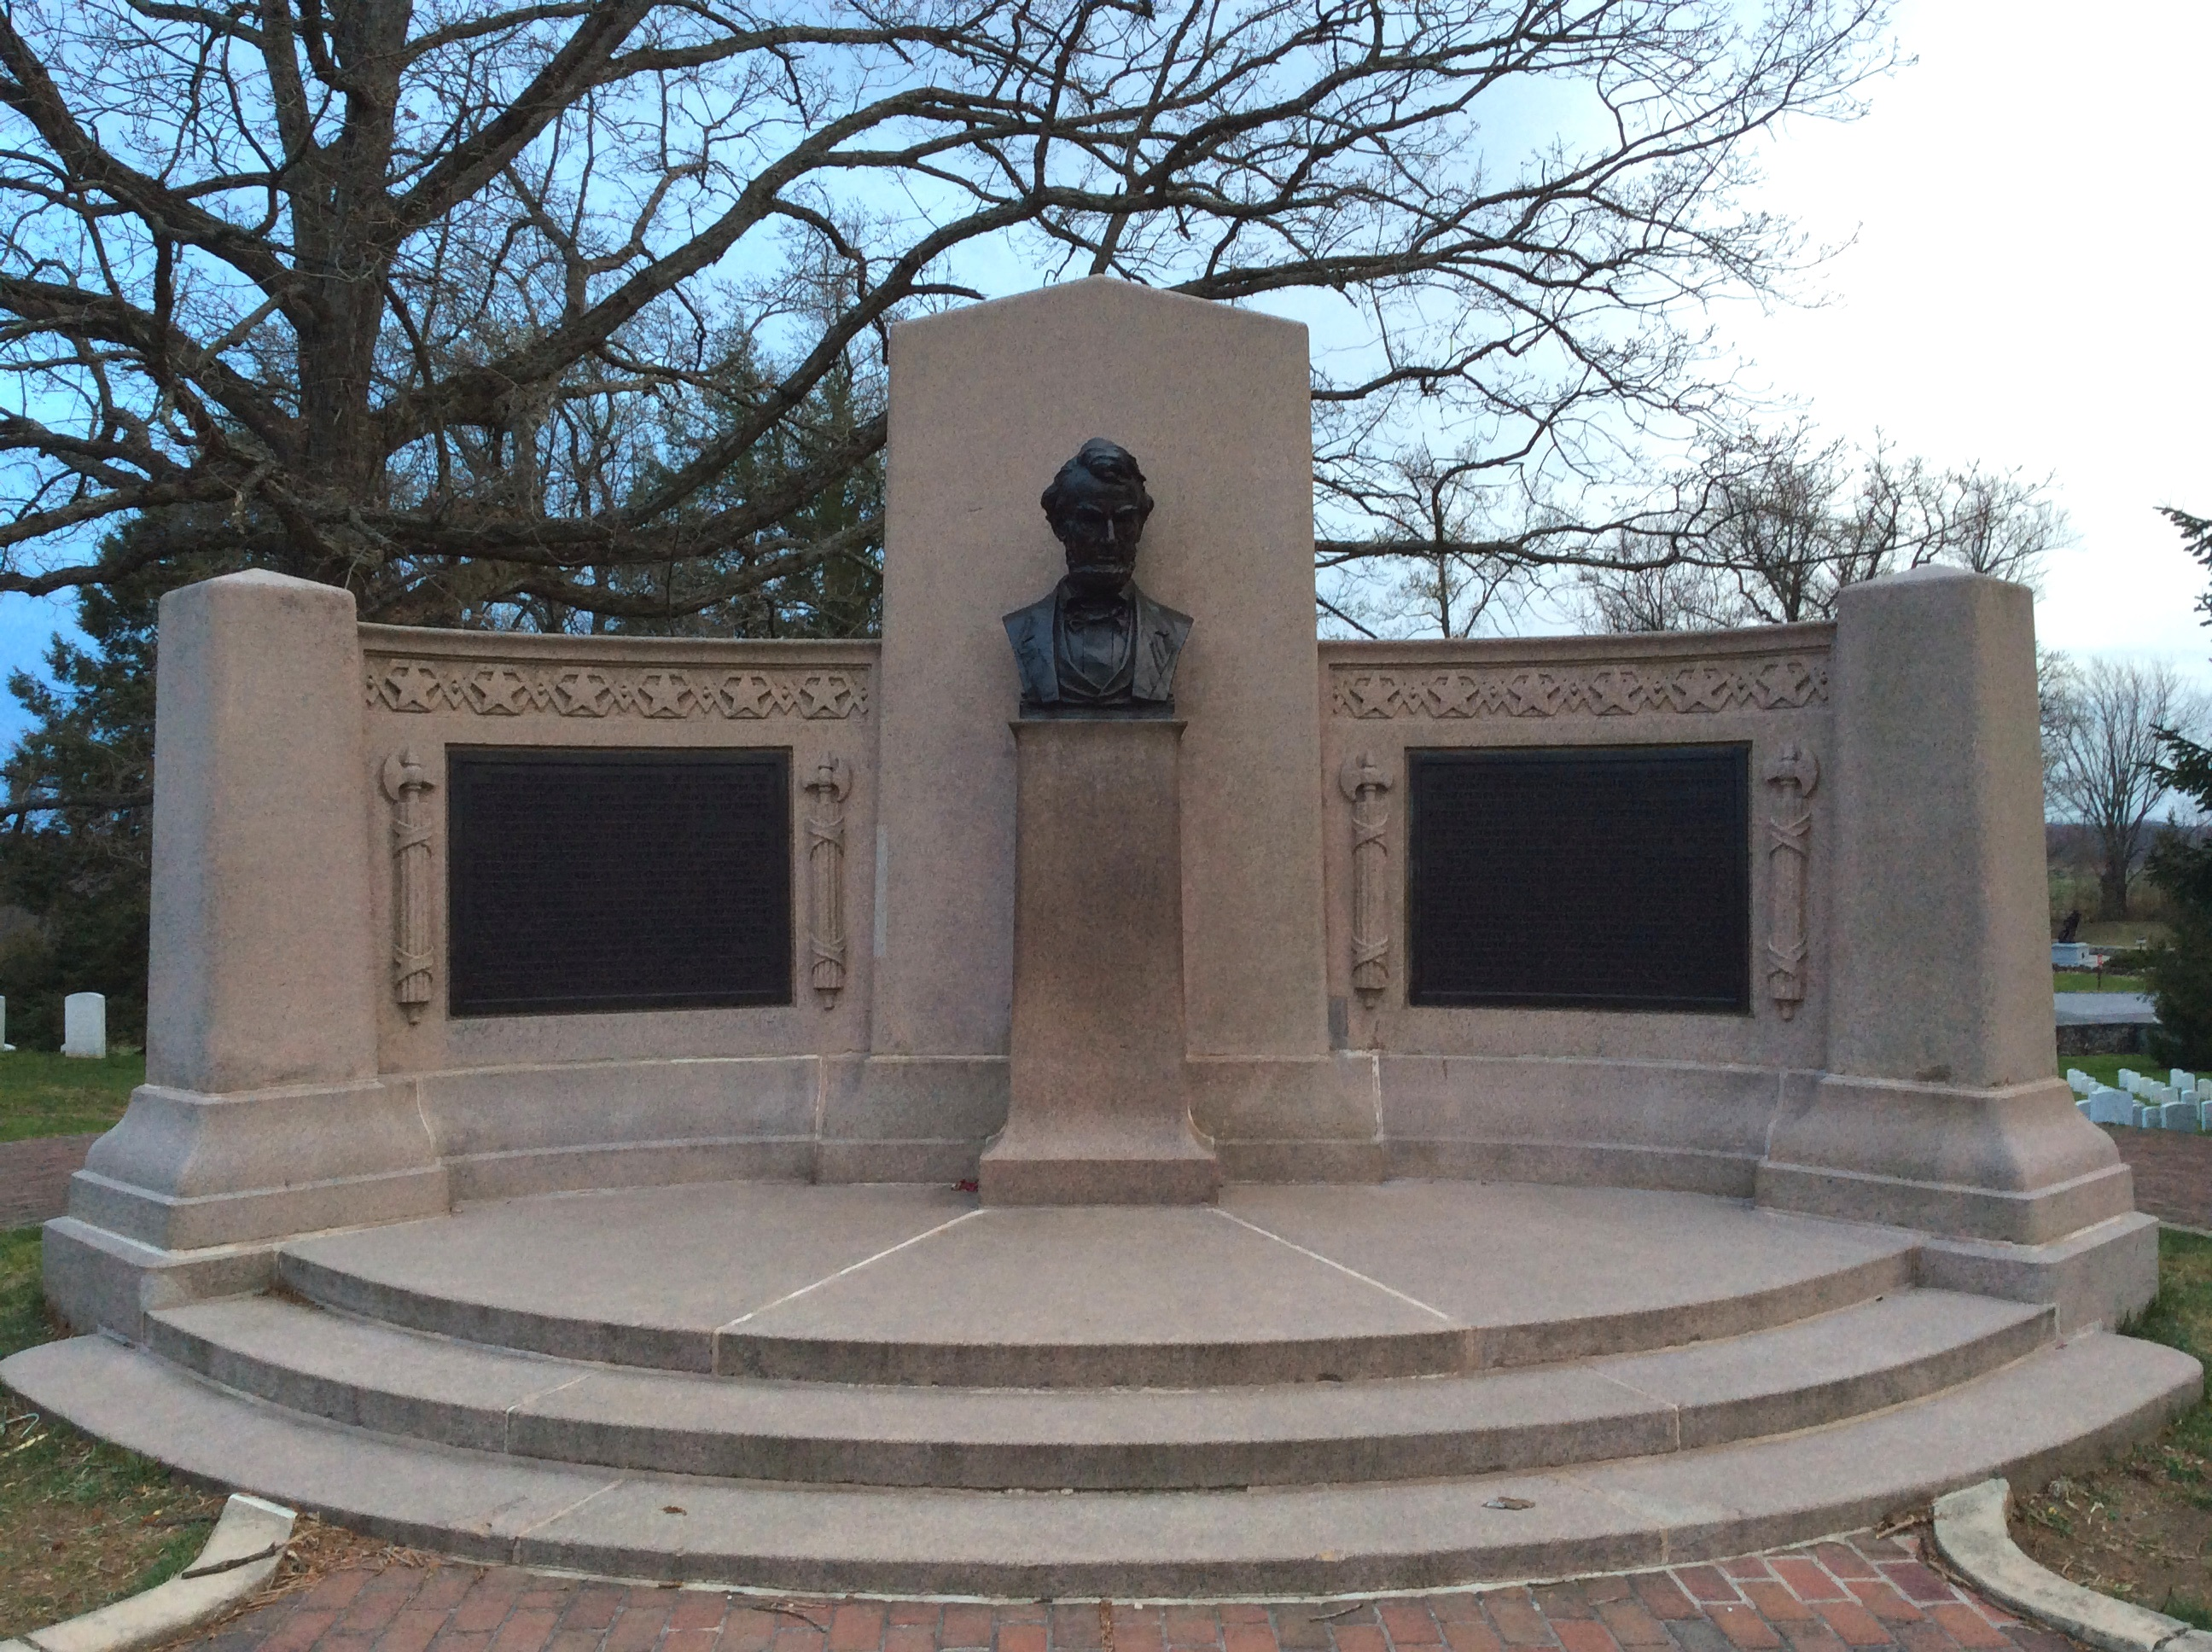 the gettysburg address essay caafaddedcbeed jpg help me do essay  gettysburg address ordinary philosophy lincoln s gettysburg address memorial at ier s national cemetery